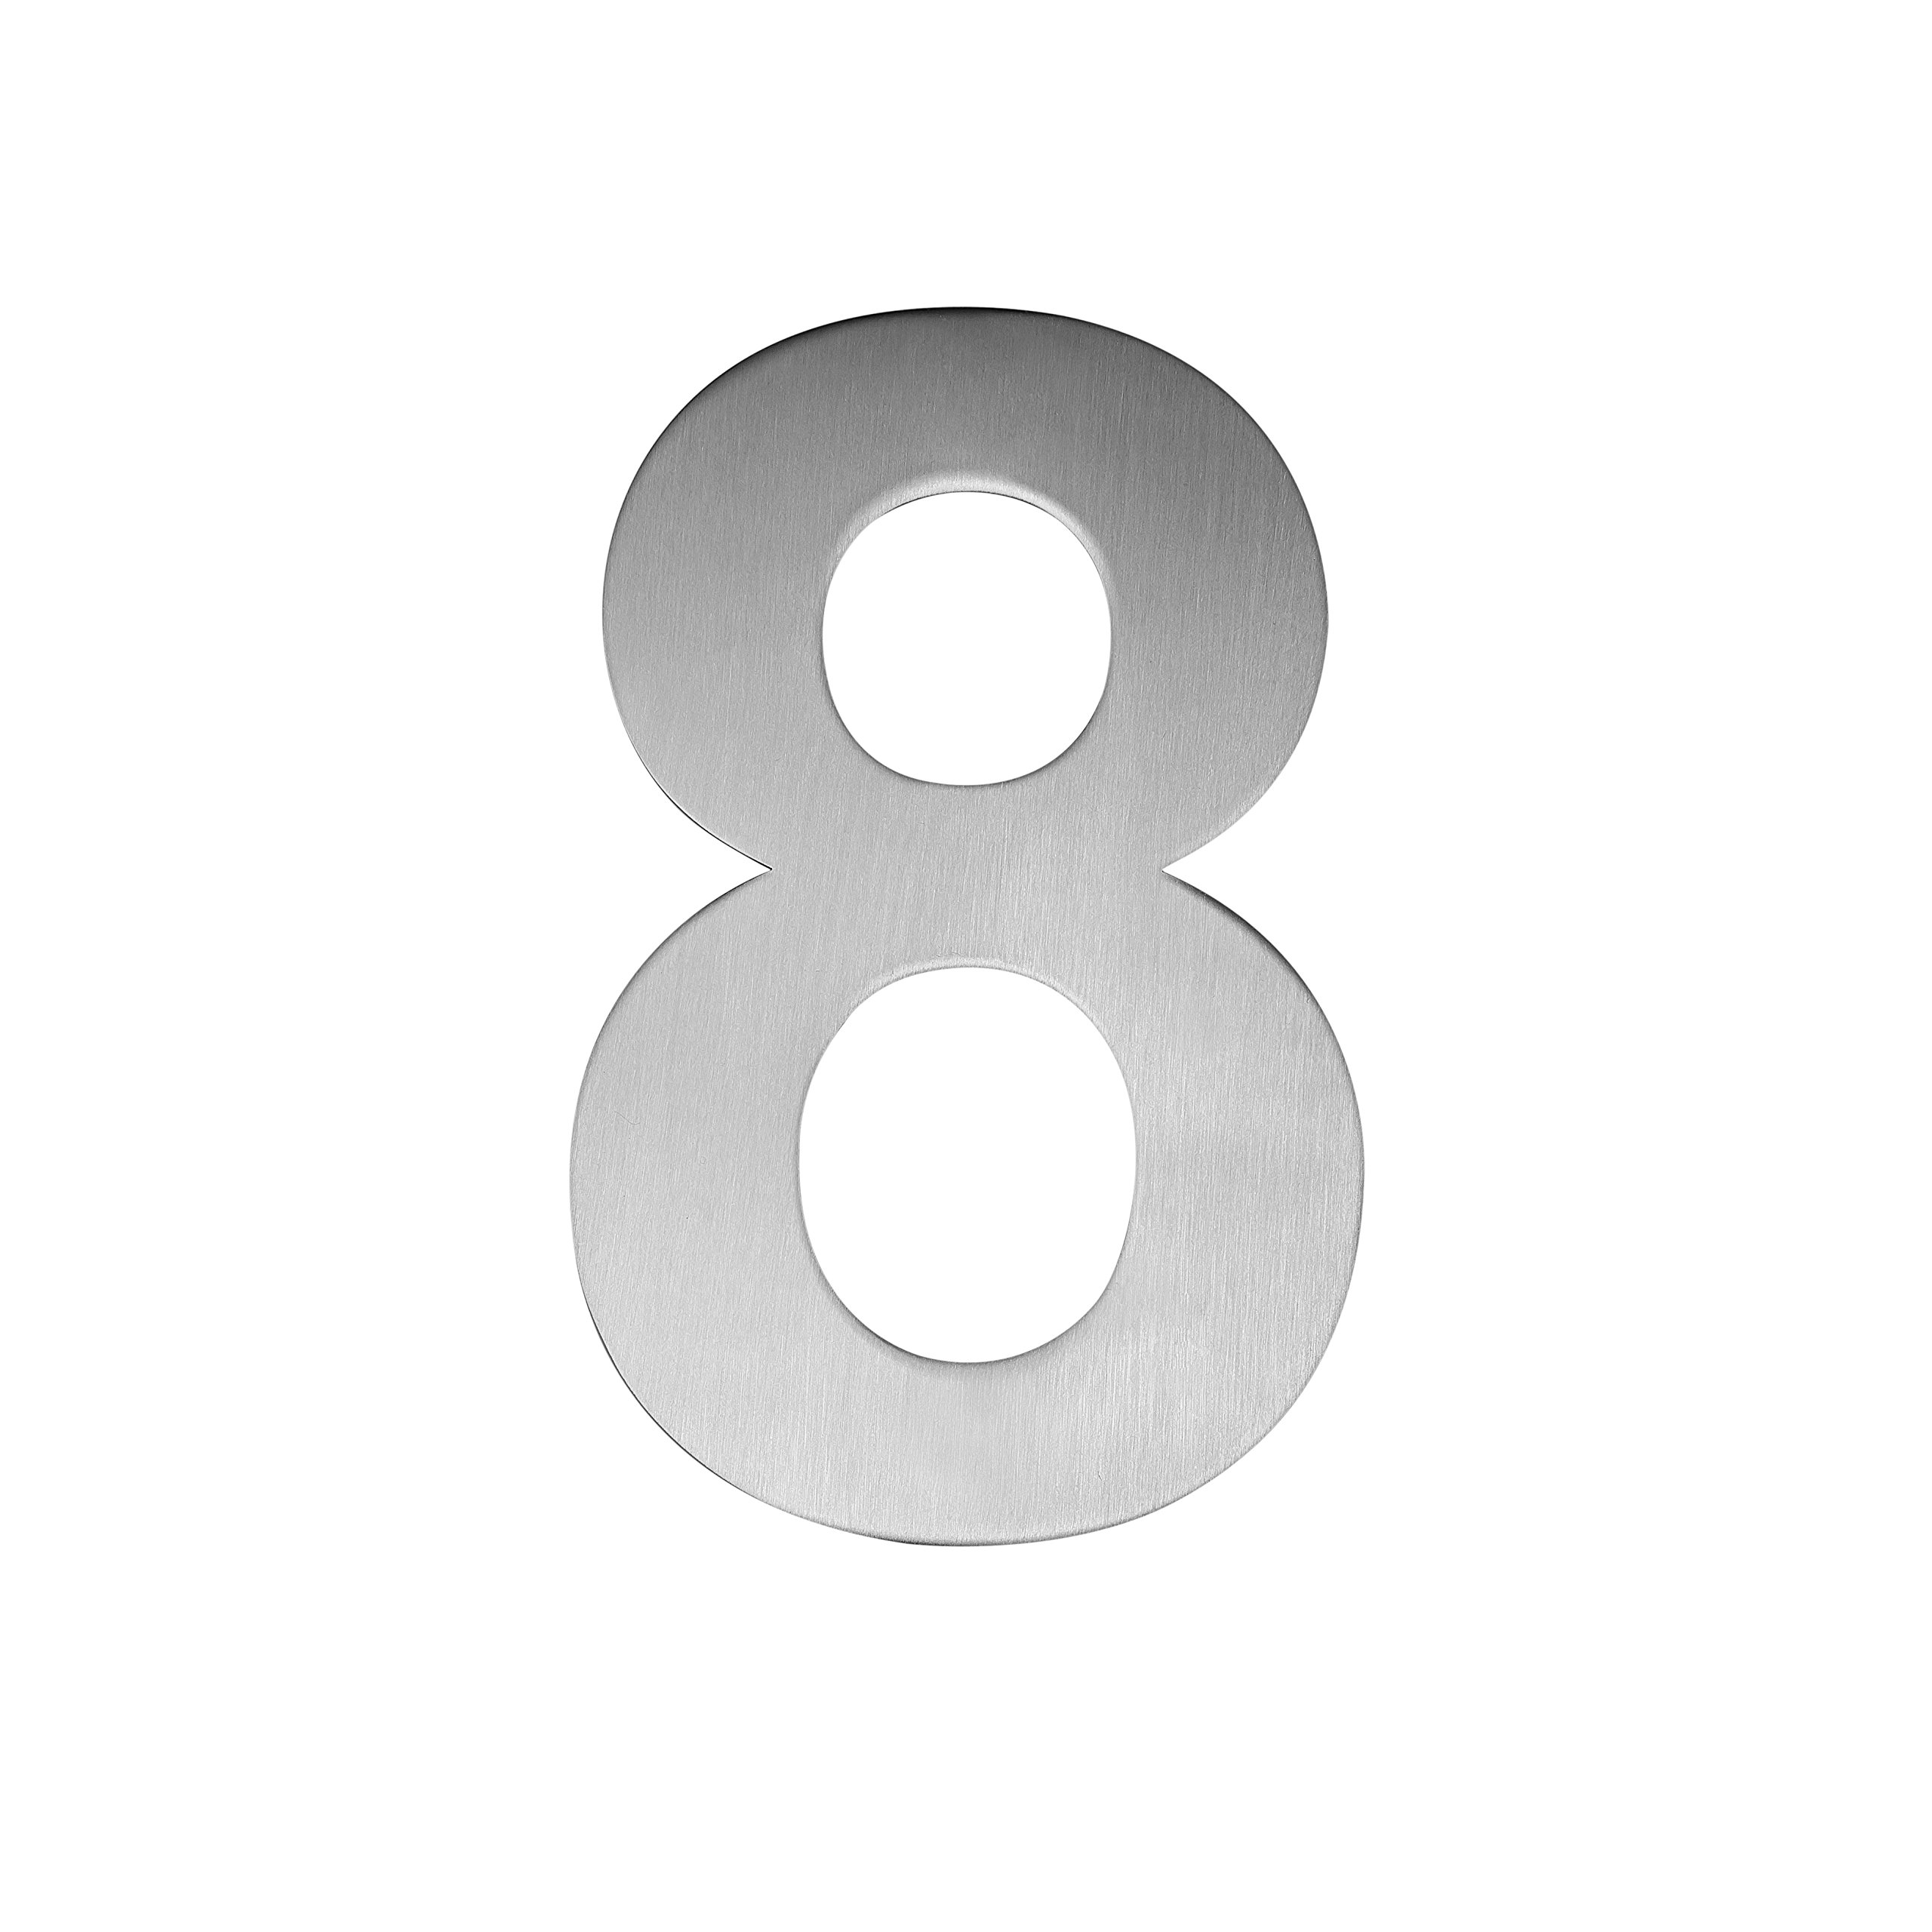 QT Modern House Number - SMALL 4 Inch - Brushed Stainless Steel (Number 8 Eight), Floating Appearance, Easy to install and made of solid 304